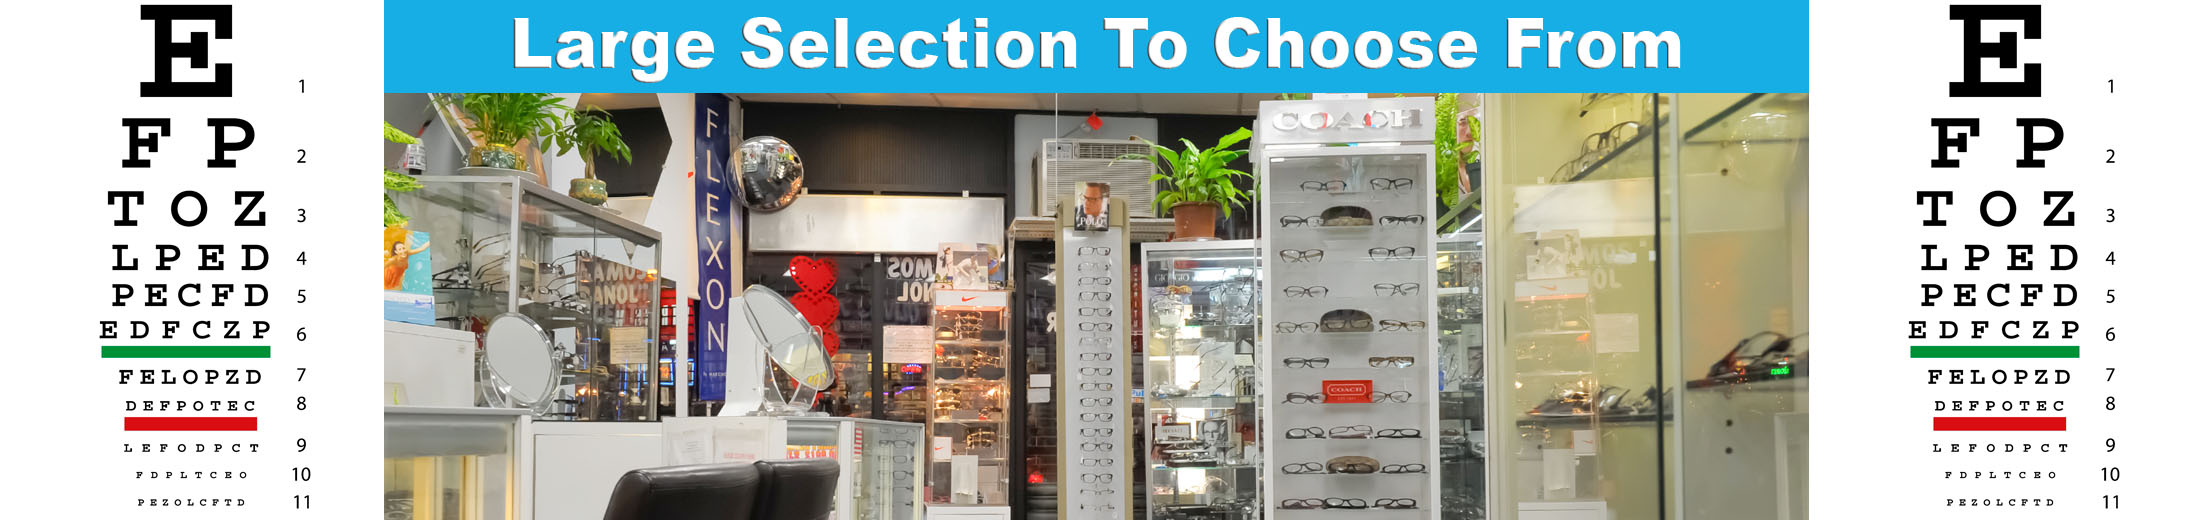 Optician optometrist Queens, NY Eye Doctor Glasses Contact Lens for eyes vision